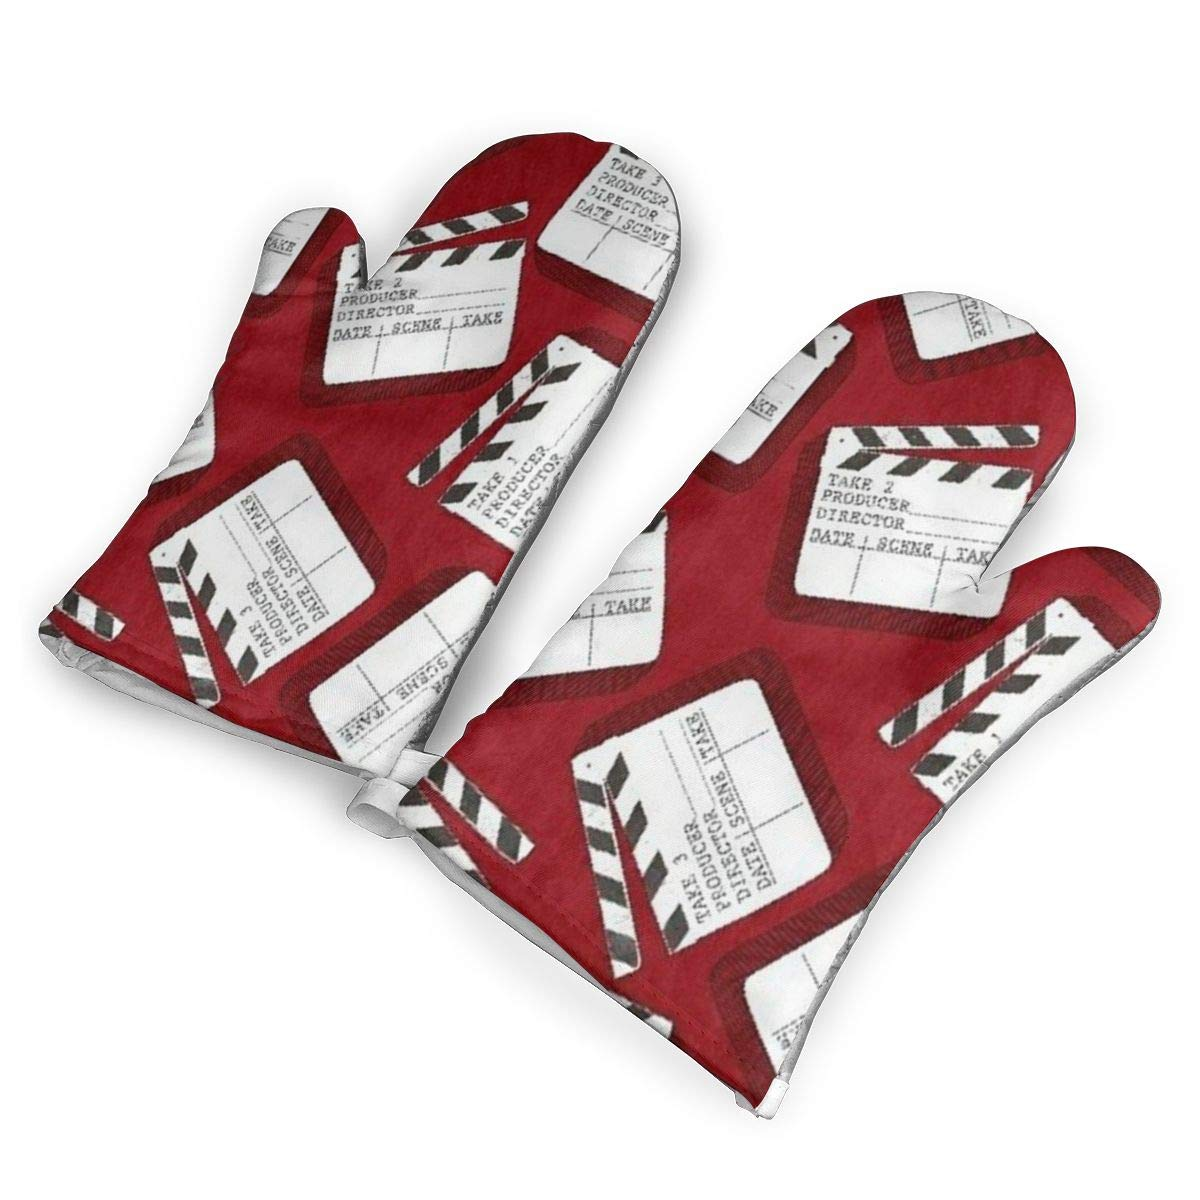 QOQD Lights Camera Action Clap Board Oven Mitts with Polyester Fabric Printed Pattern,1 Pair of Heat Resistant Oven Gloves for Cooking,Grilling,Barbecue Potholders